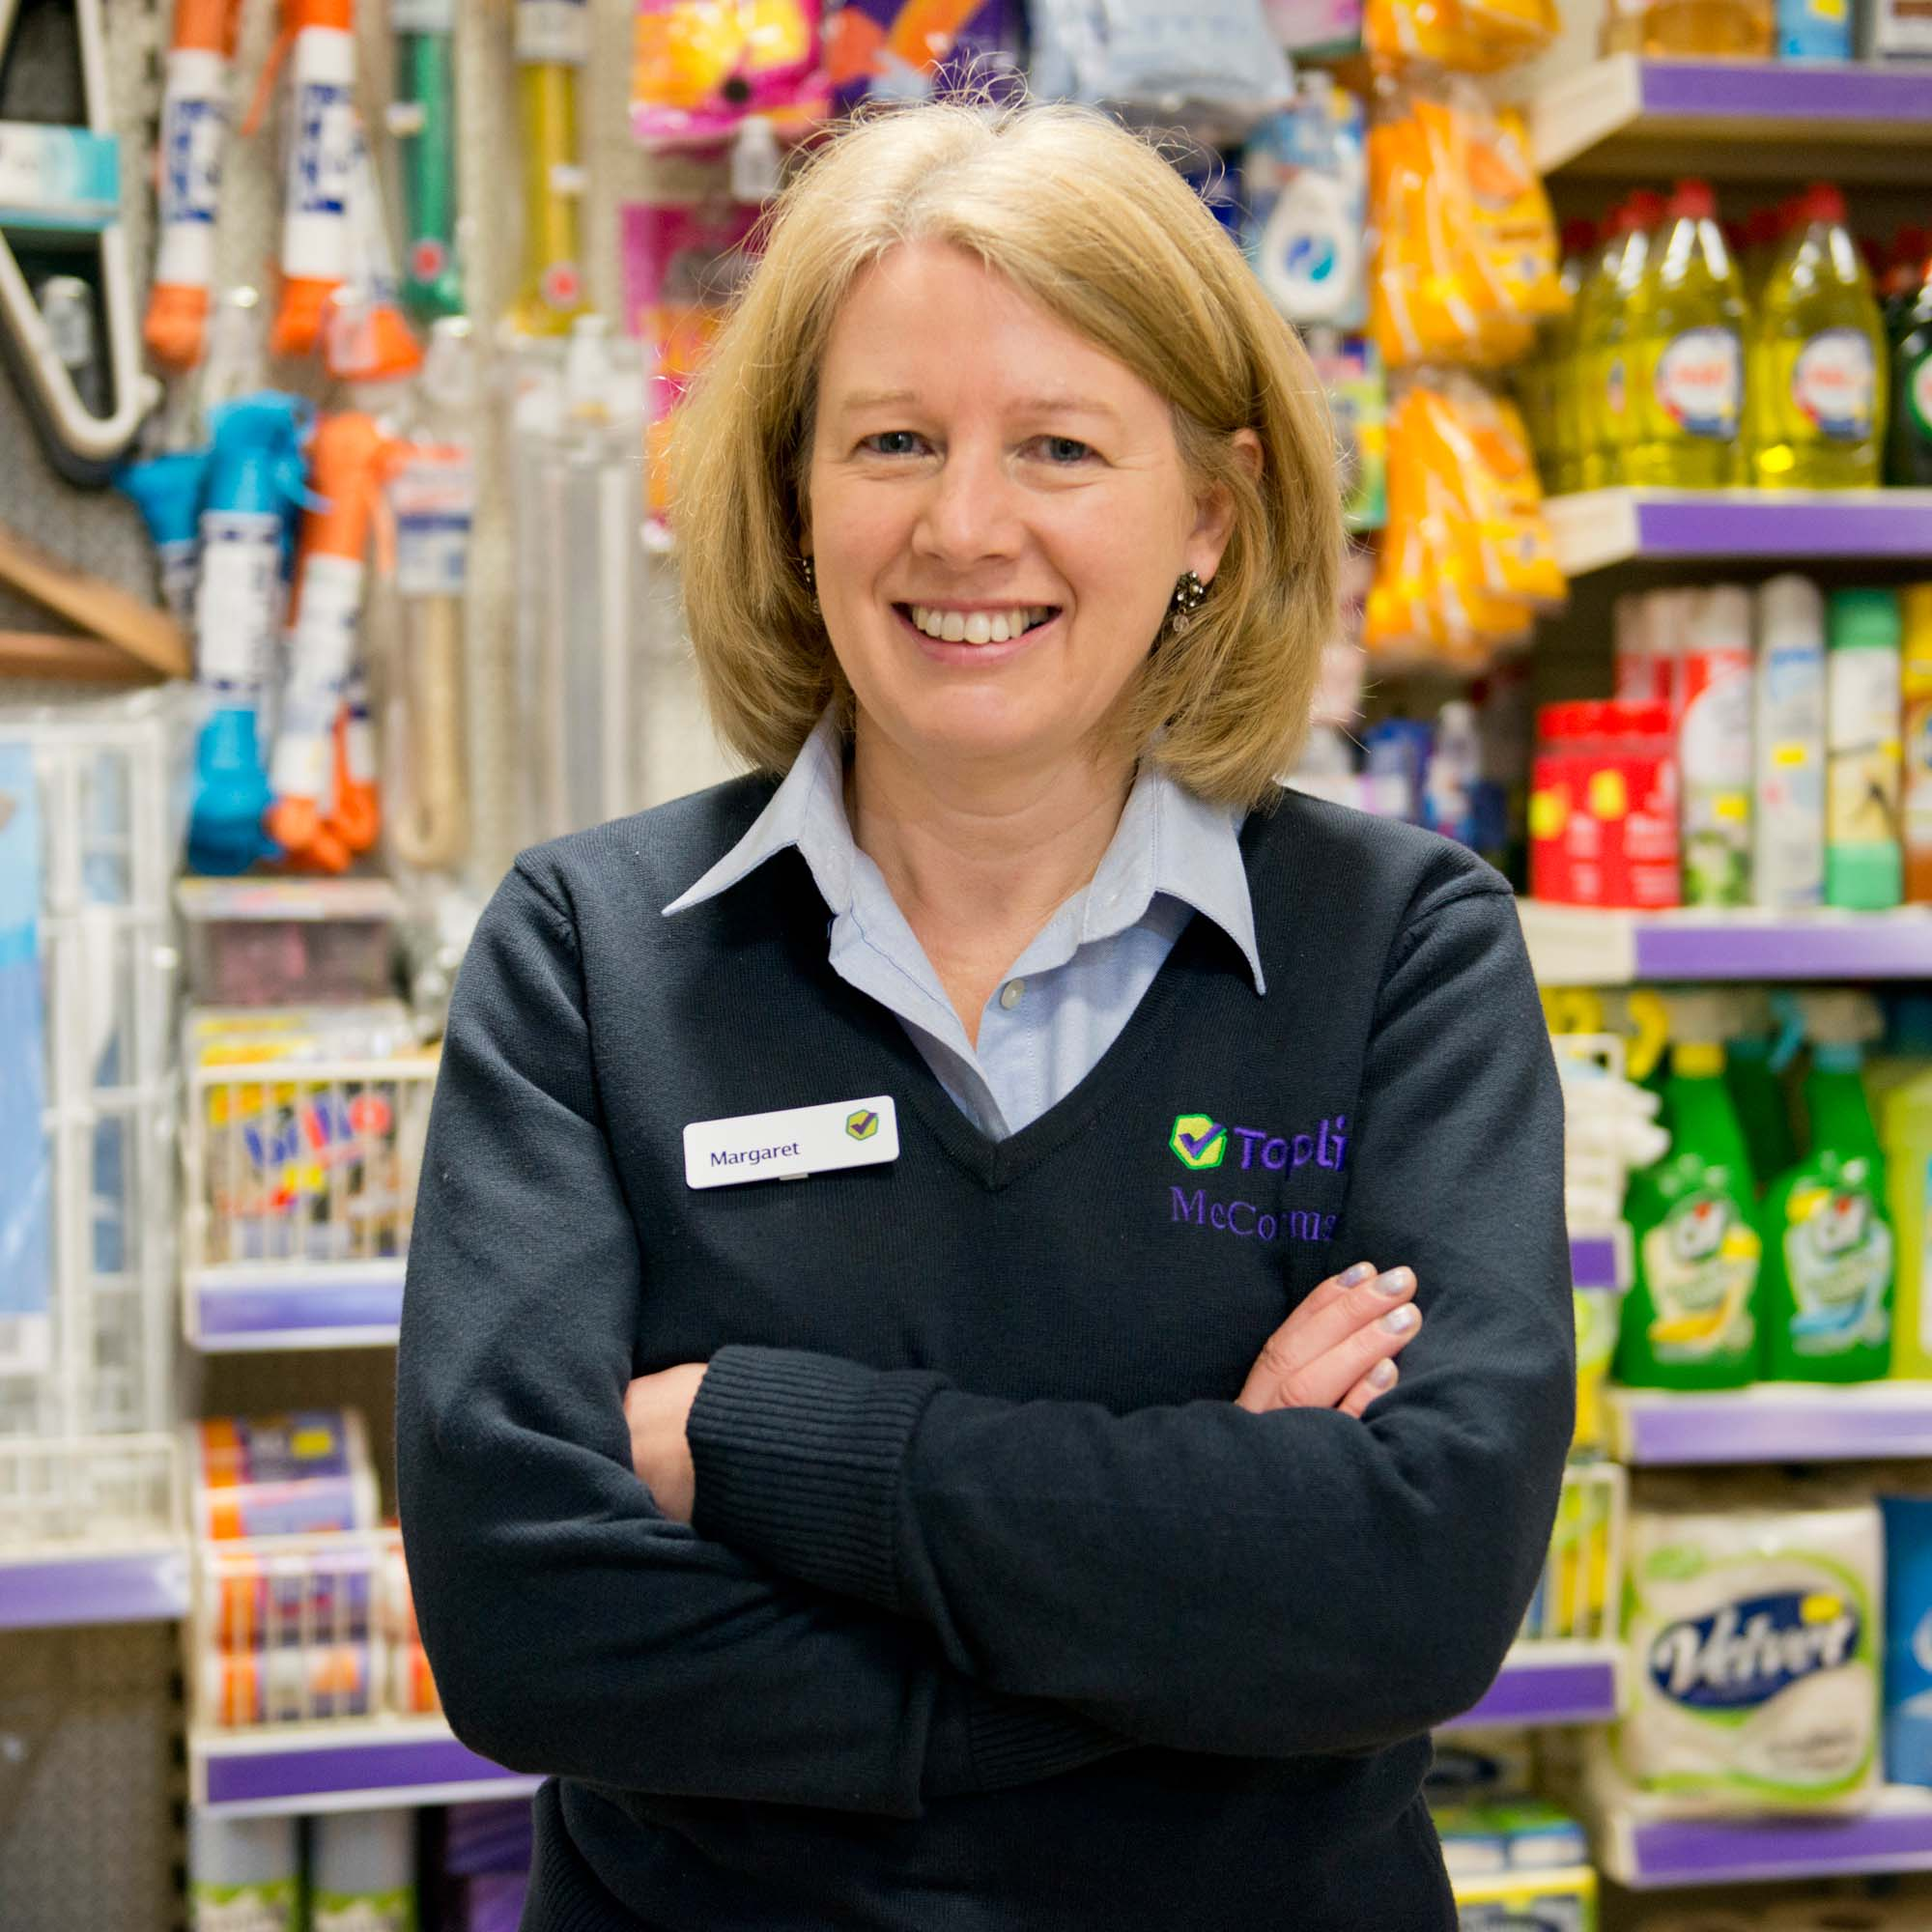 Shop Assistant - Margaret Deane